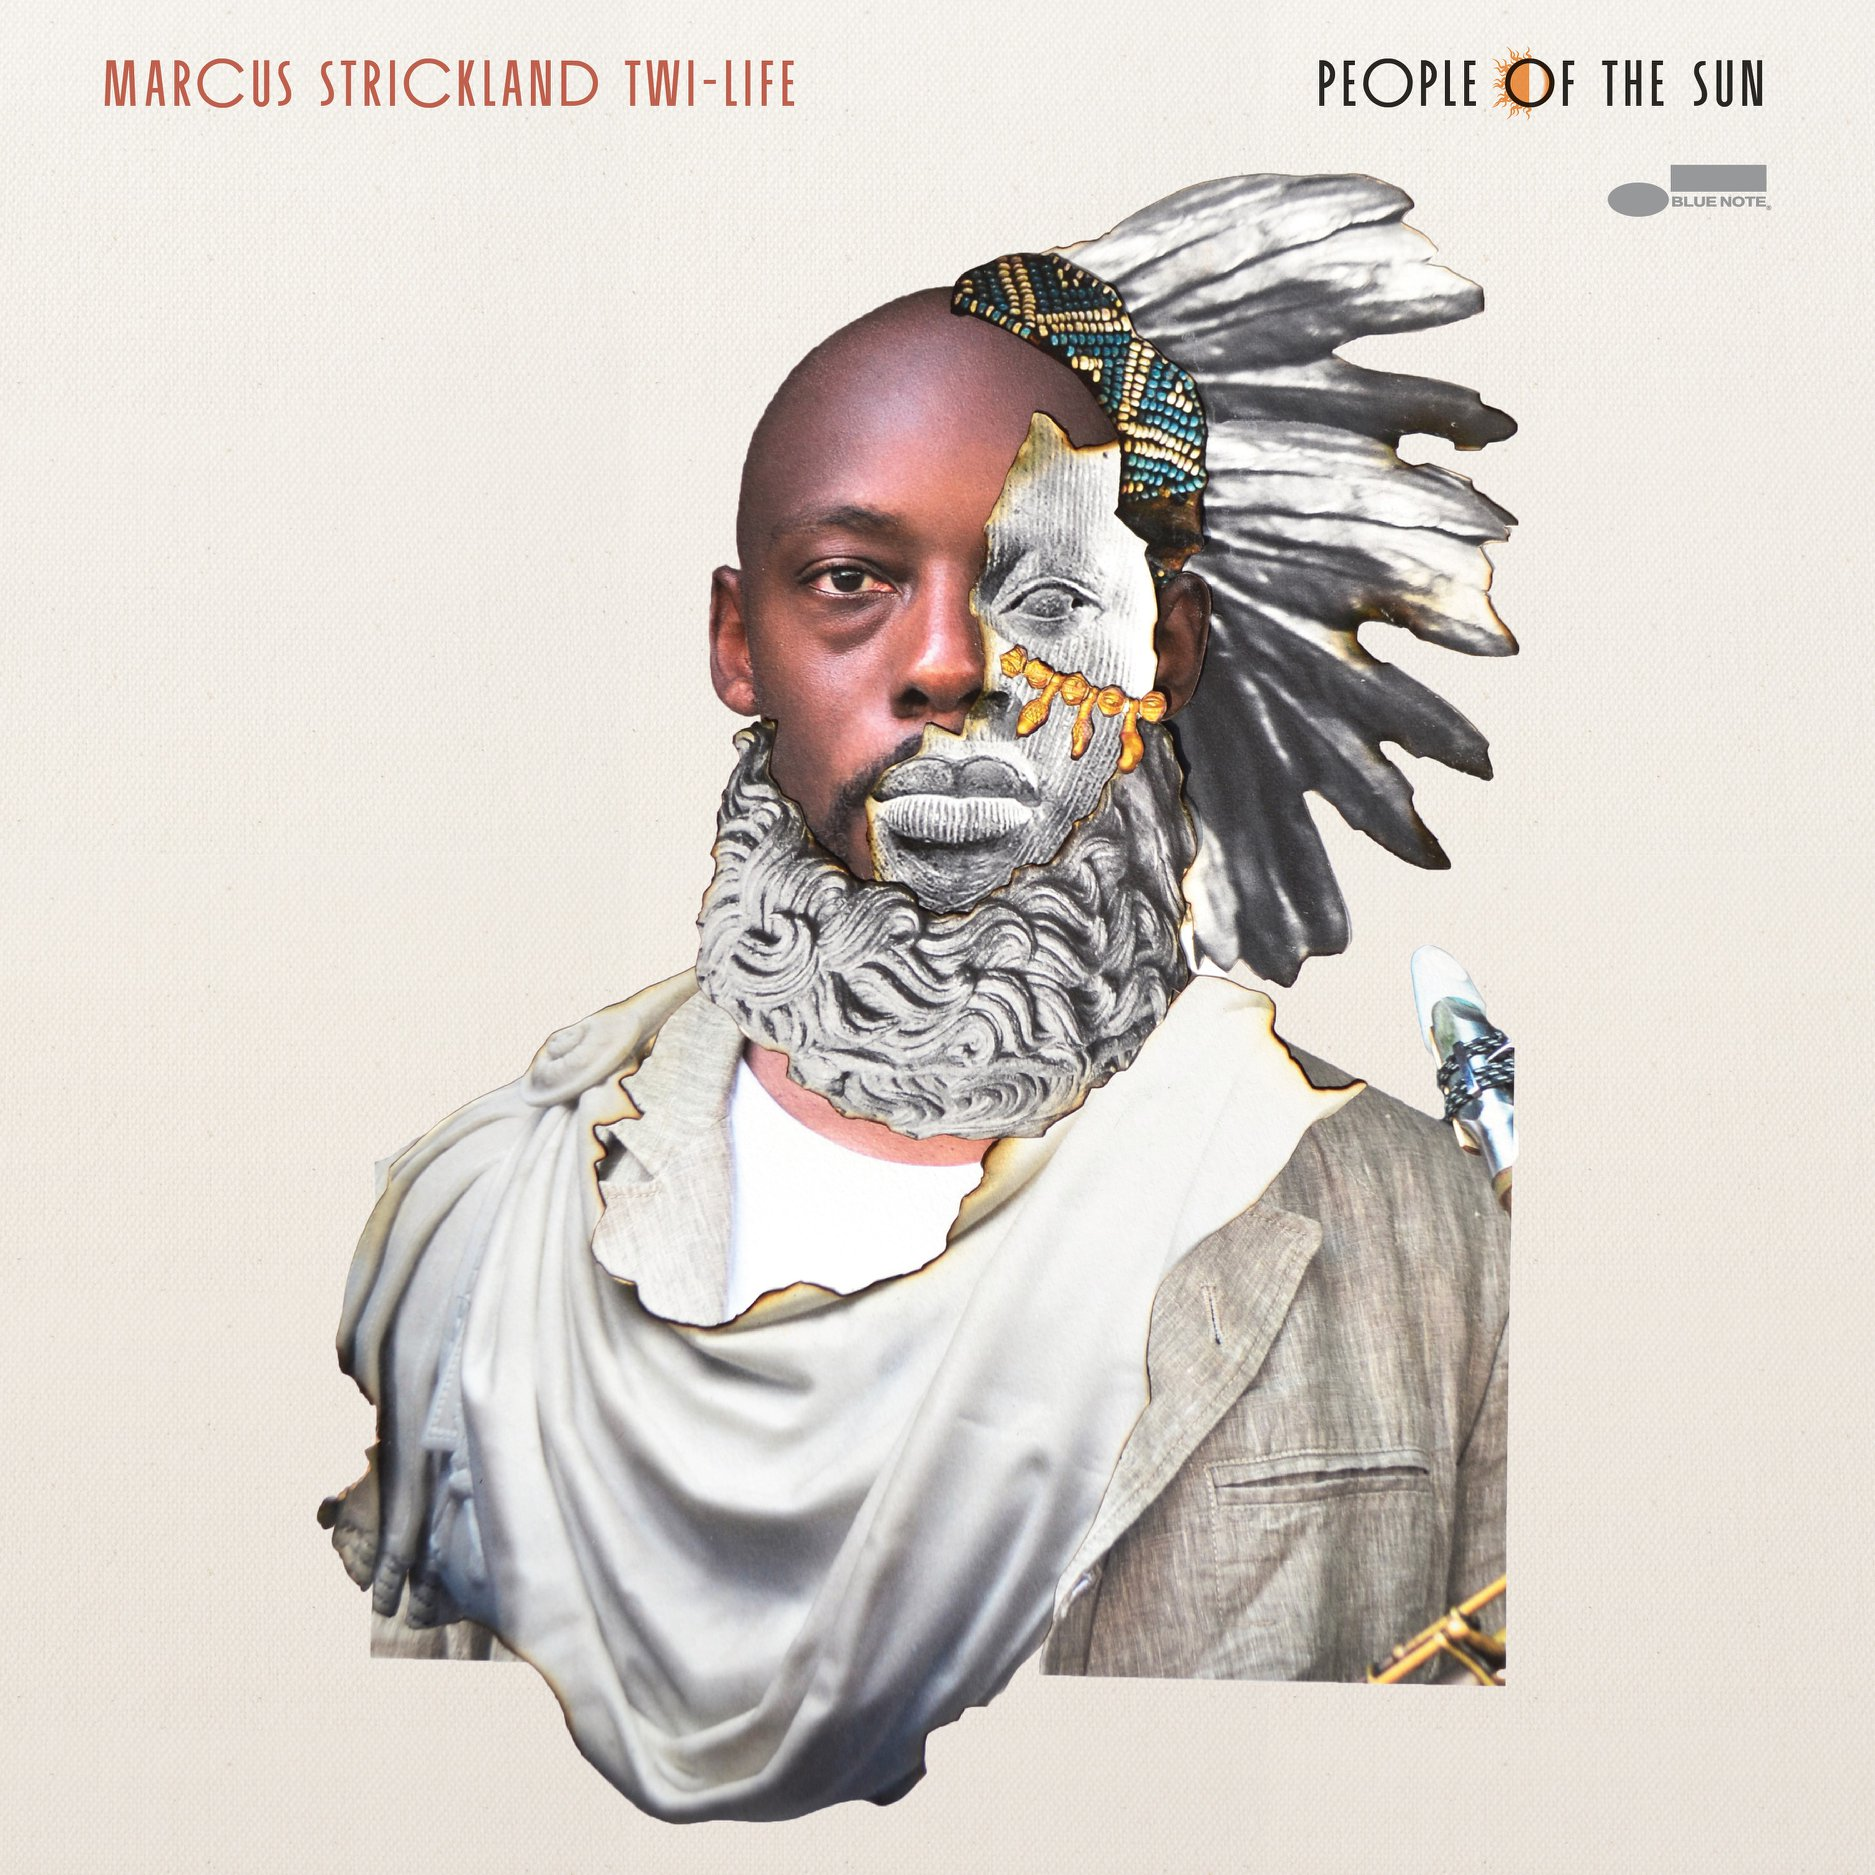 marcus strickland, people of the sun